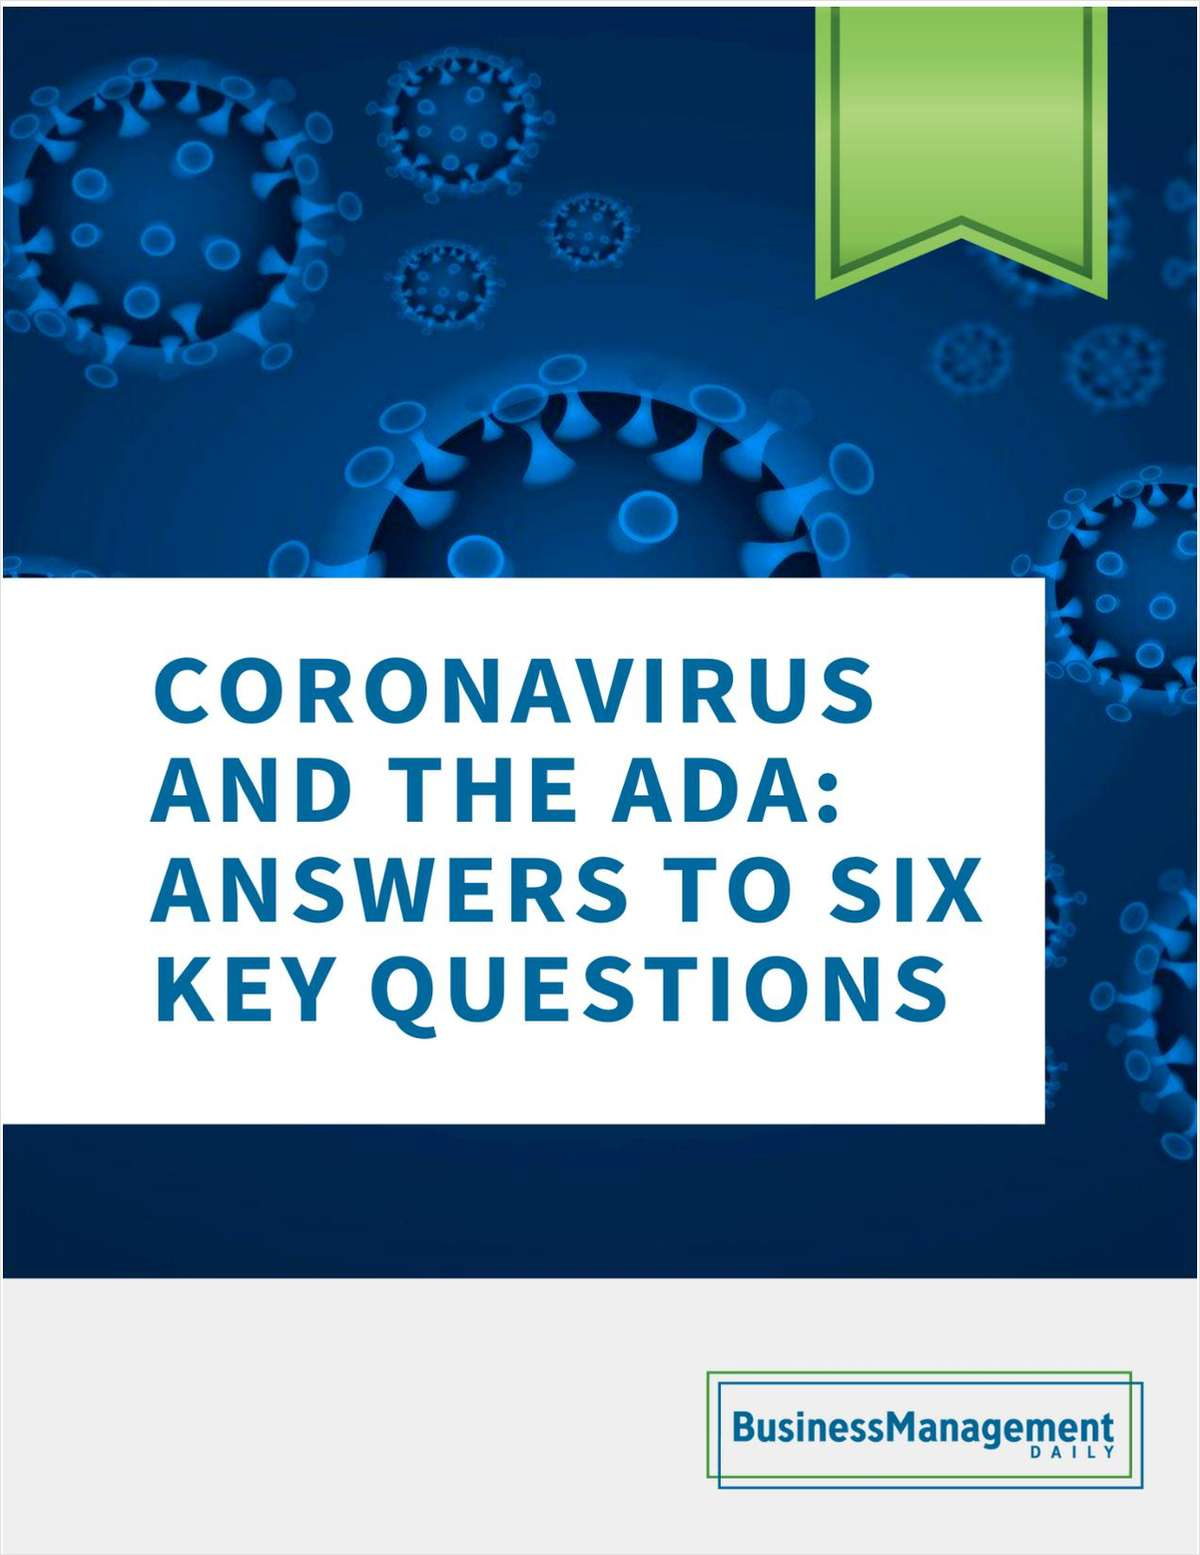 Coronavirus and the ADA: Answers to 6 key questions